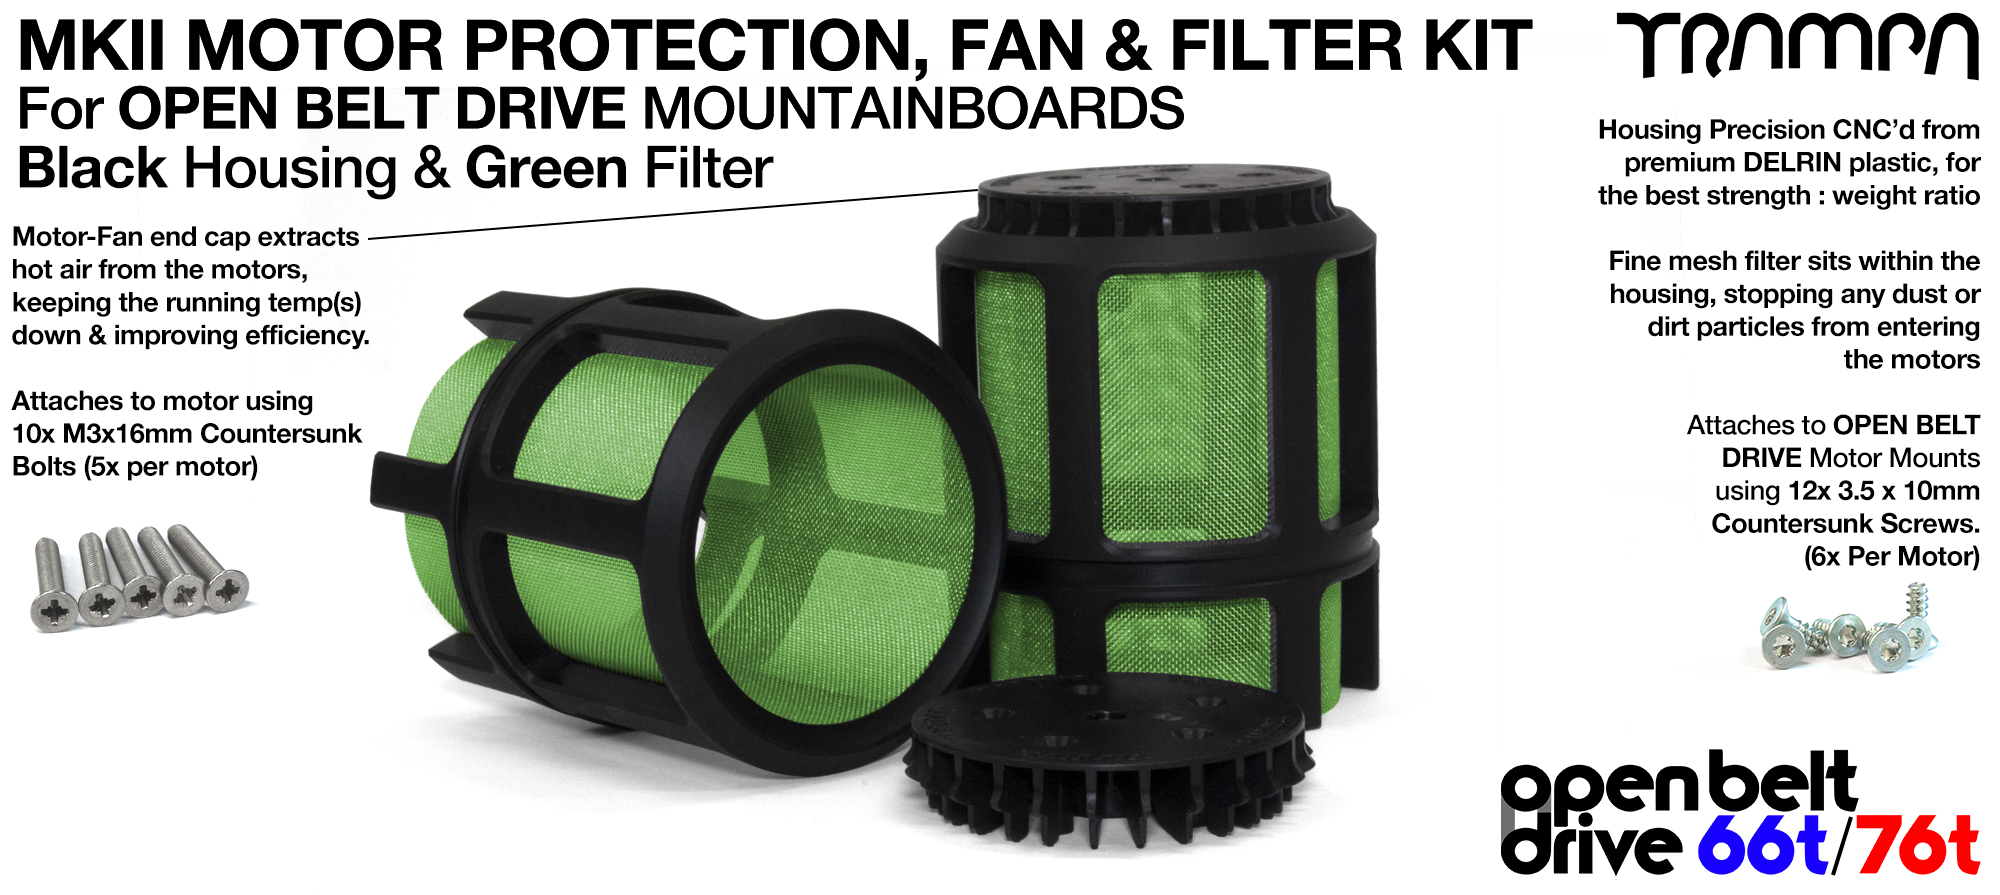 GREEN Mesh filter in Motor Protection Cage with Fan